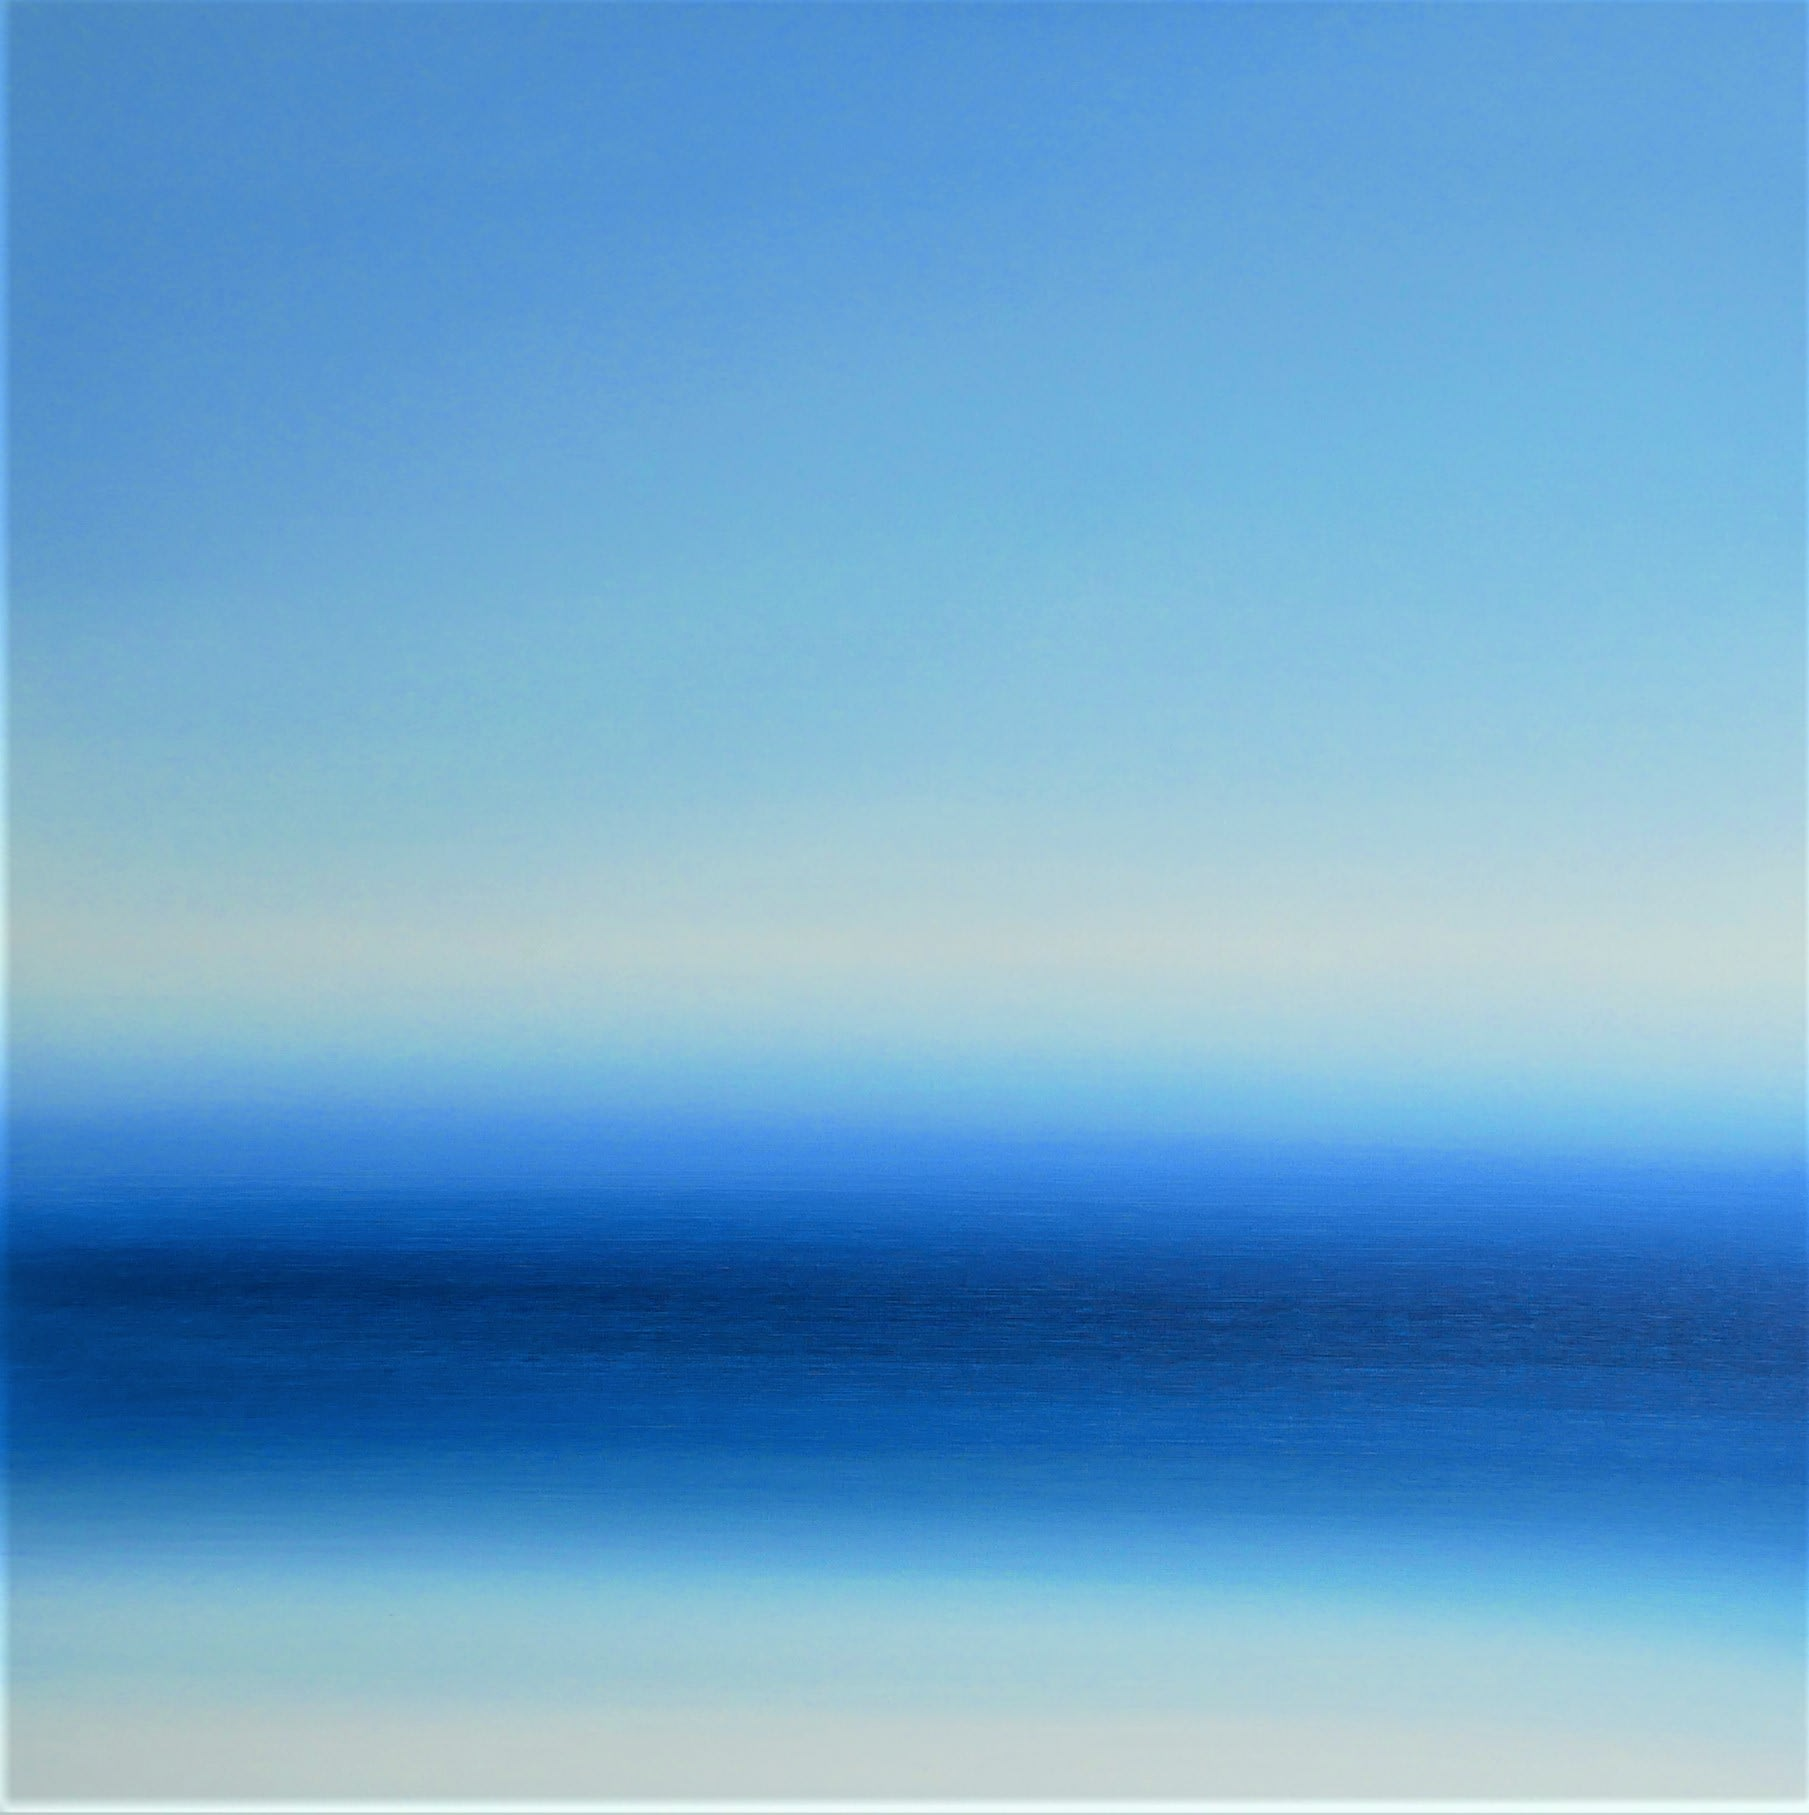 """<span class=""""link fancybox-details-link""""><a href=""""/store/artworks/8070-martyn-perryman-summer-peace-st-ives-2-2021/"""">View Detail Page</a></span><div class=""""artist""""><strong>Martyn Perryman</strong></div> <div class=""""title""""><em>Summer Peace St Ives 2</em>, 2021</div> <div class=""""signed_and_dated"""">signed on verso</div> <div class=""""medium"""">oil on canvas <br /> framed</div> <div class=""""dimensions"""">canvas: 70 x 70 cm <br /> framed: 80 x 80 cm</div><div class=""""price"""">£1,100.00</div><div class=""""copyright_line"""">Own Art: £110 x 10 Months, 0% APR</div>"""